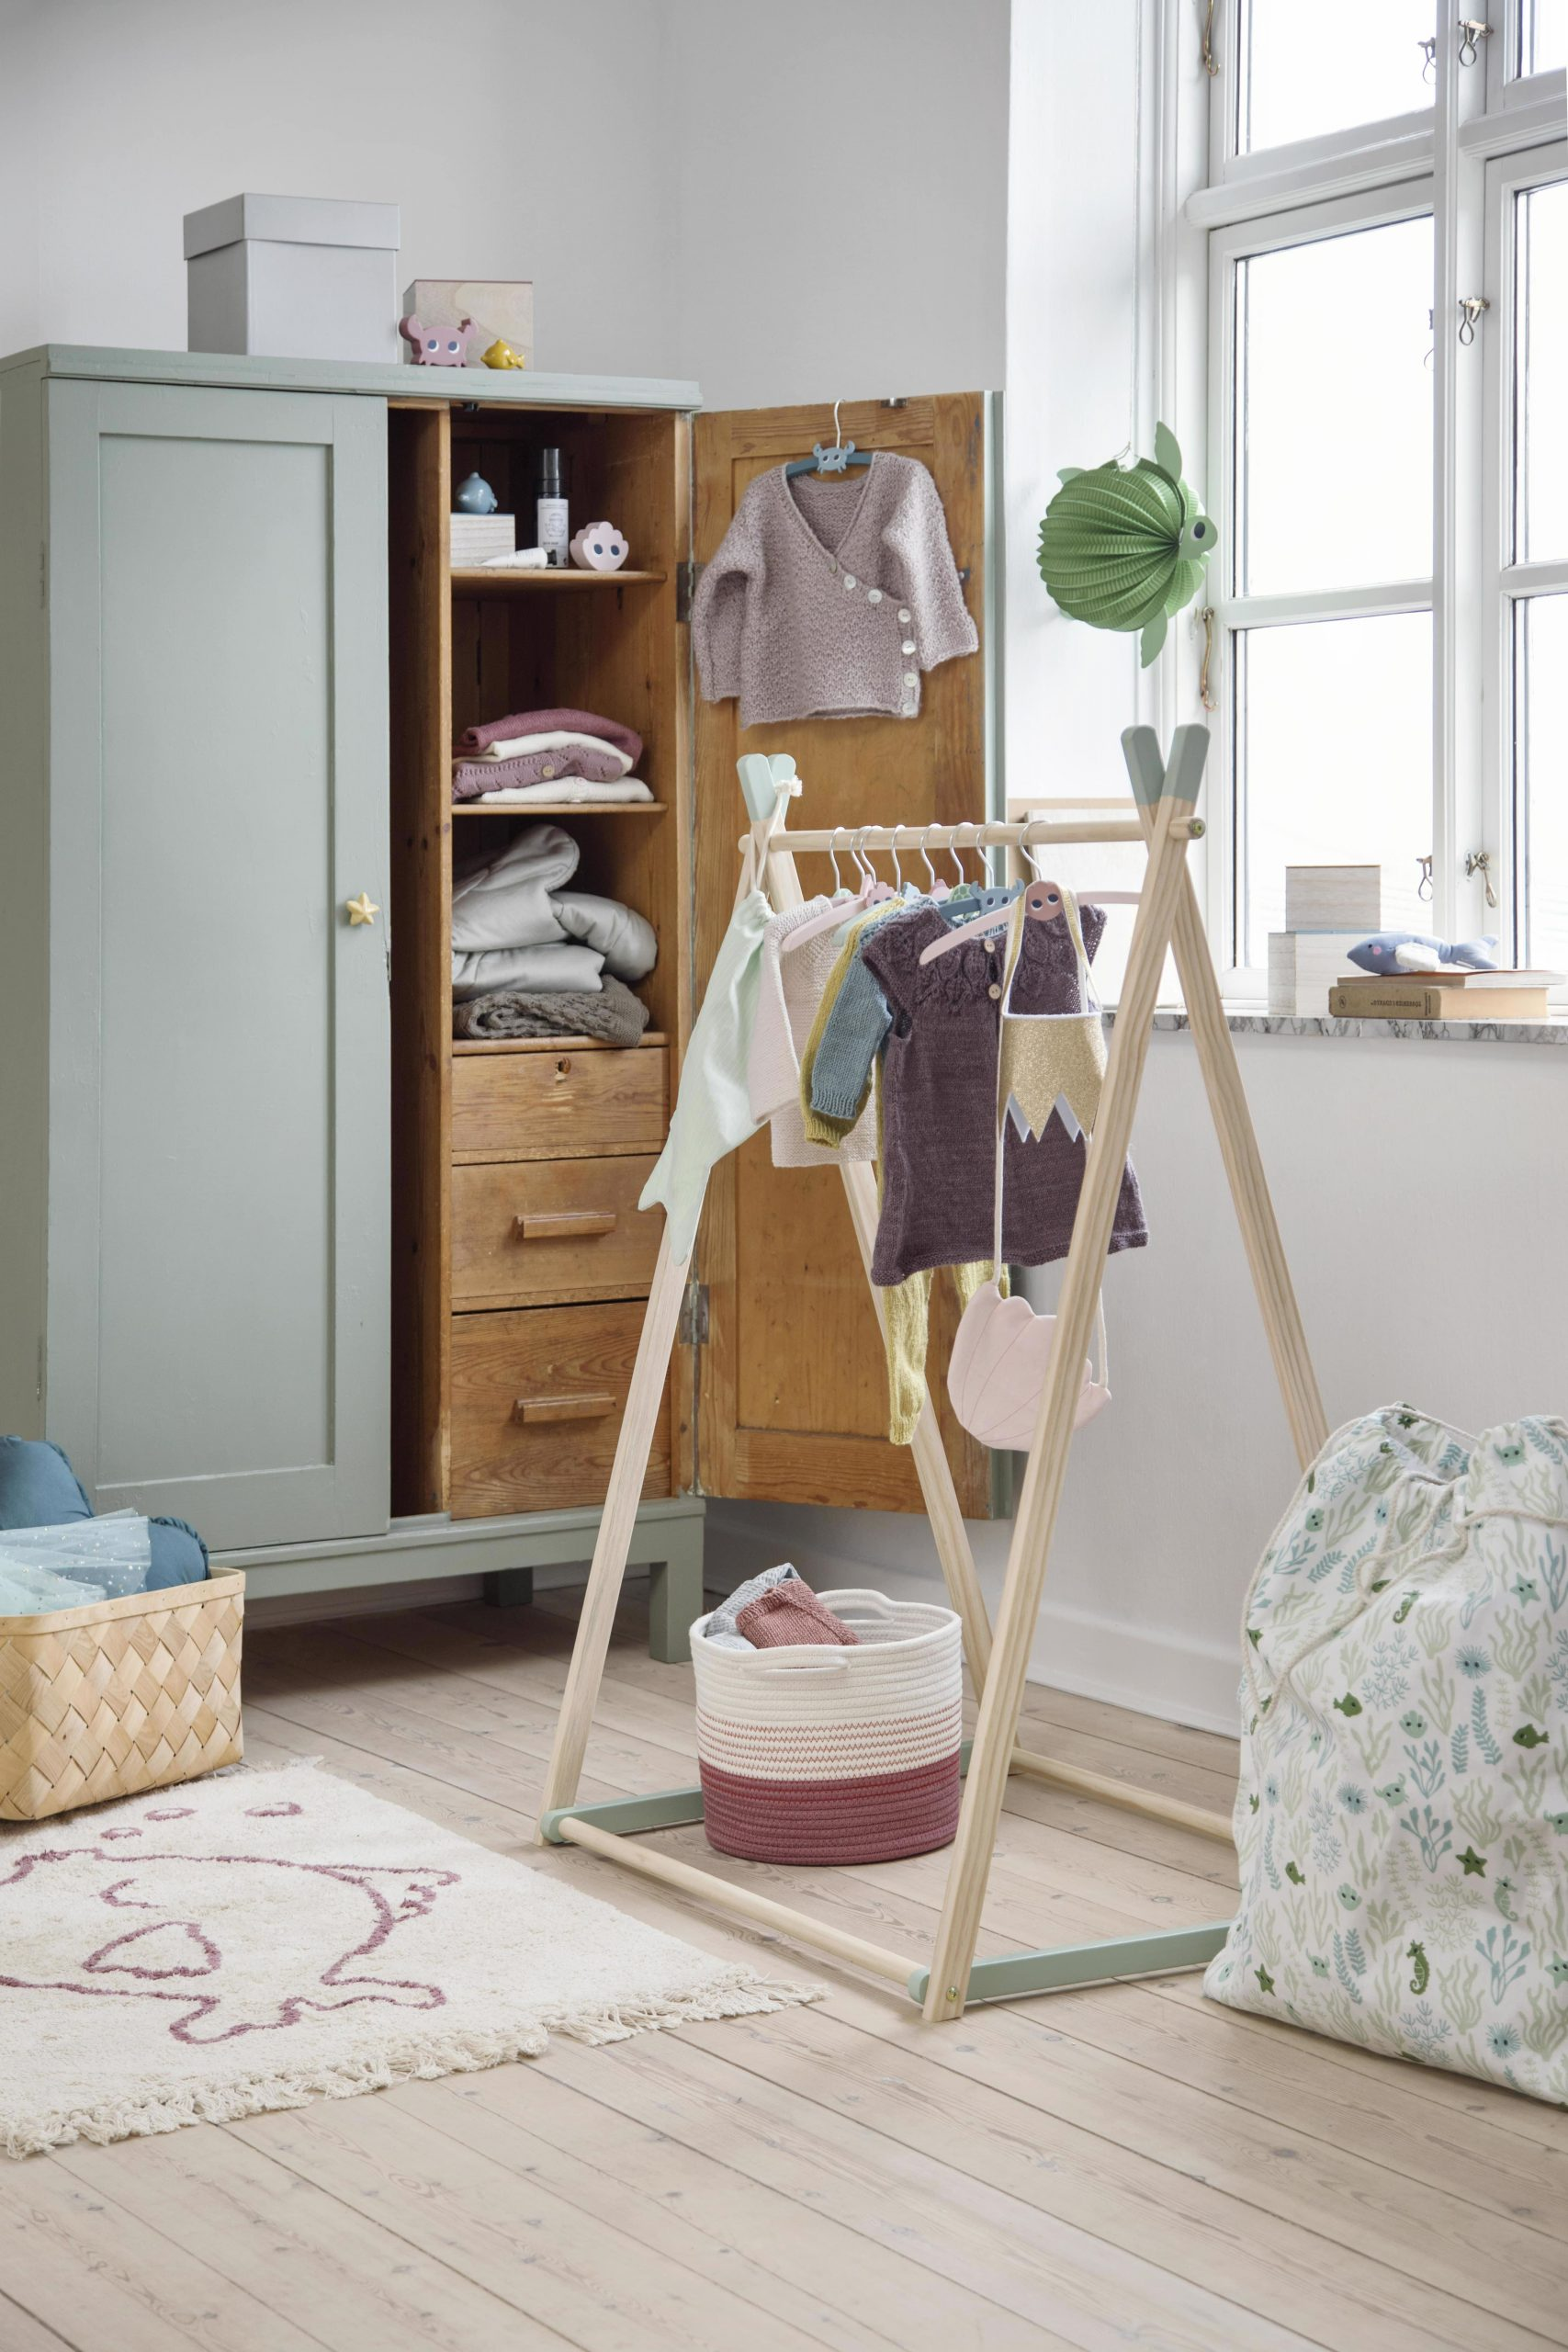 Available 23 April 2020 SostreneGrene 81 min 4480x6720 1 scaled - Sostrene Grene - Kinderinterieur en Speelgoed Collectie 2020